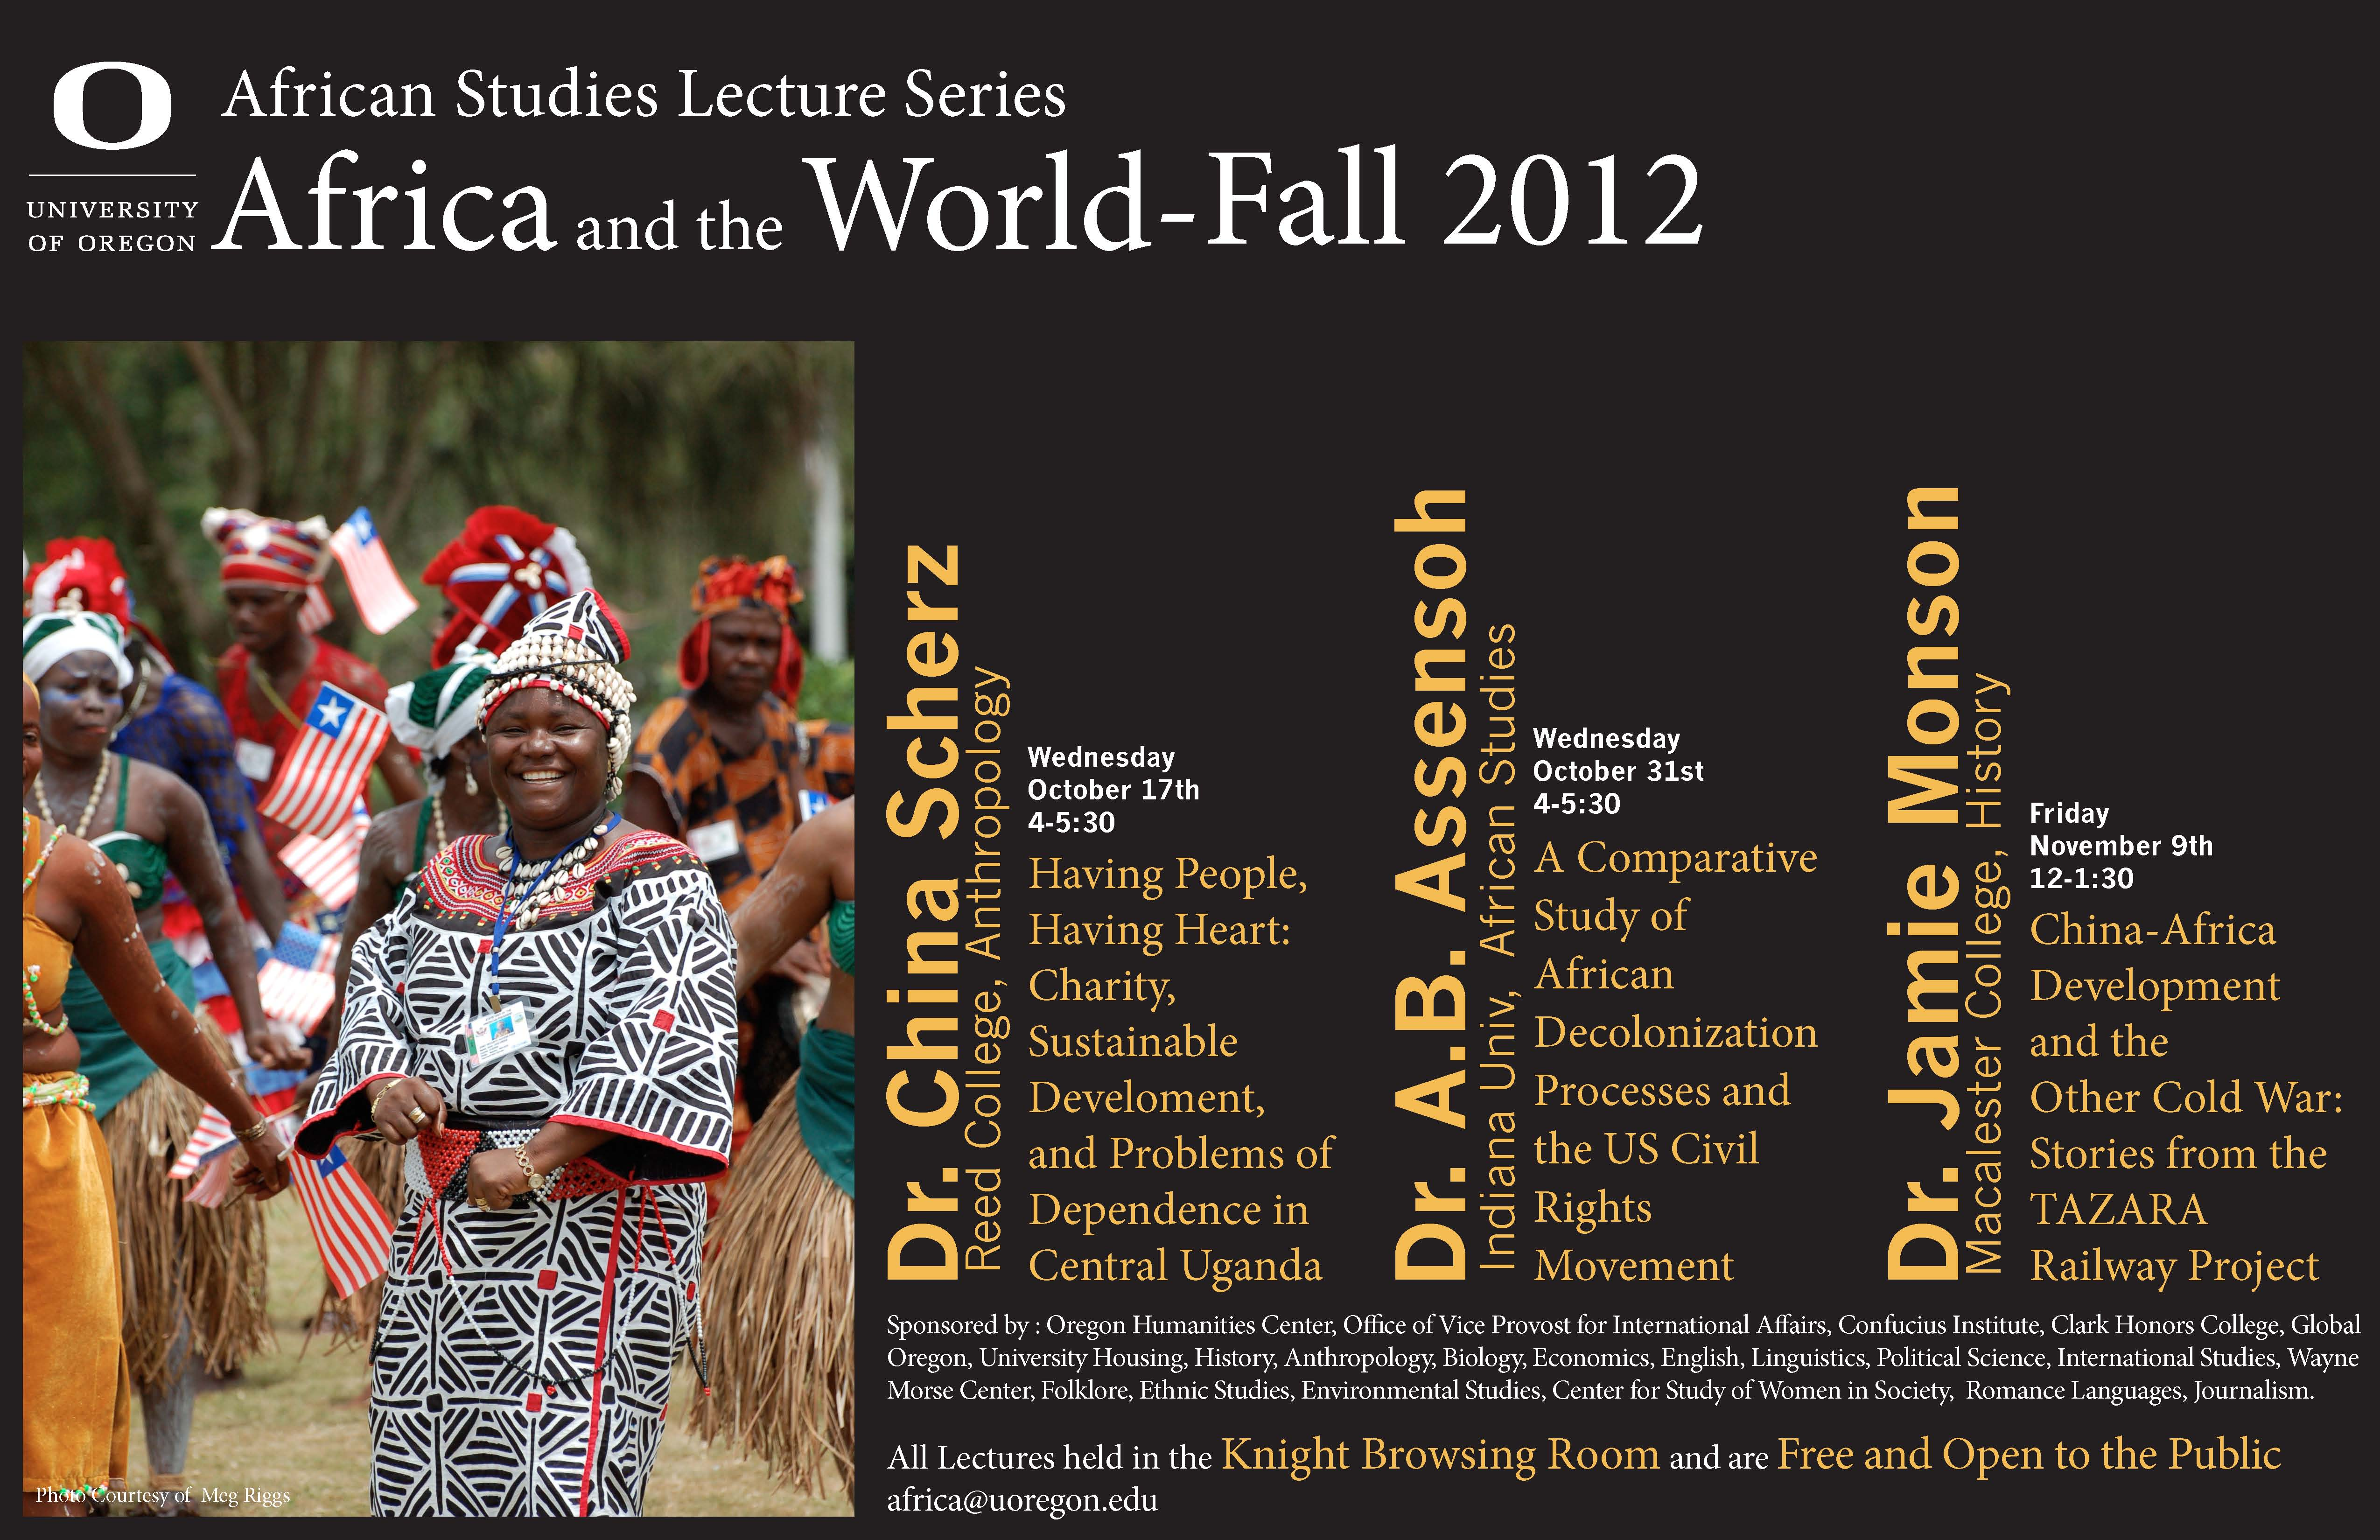 african studies final 1 Students enrolled in an african studies class at california state university-northridge were asked two very biased questions about donald trump and hillary clinton on the online final exam even though it wasn't something covered in the course professor karin stanford teaches the course called.